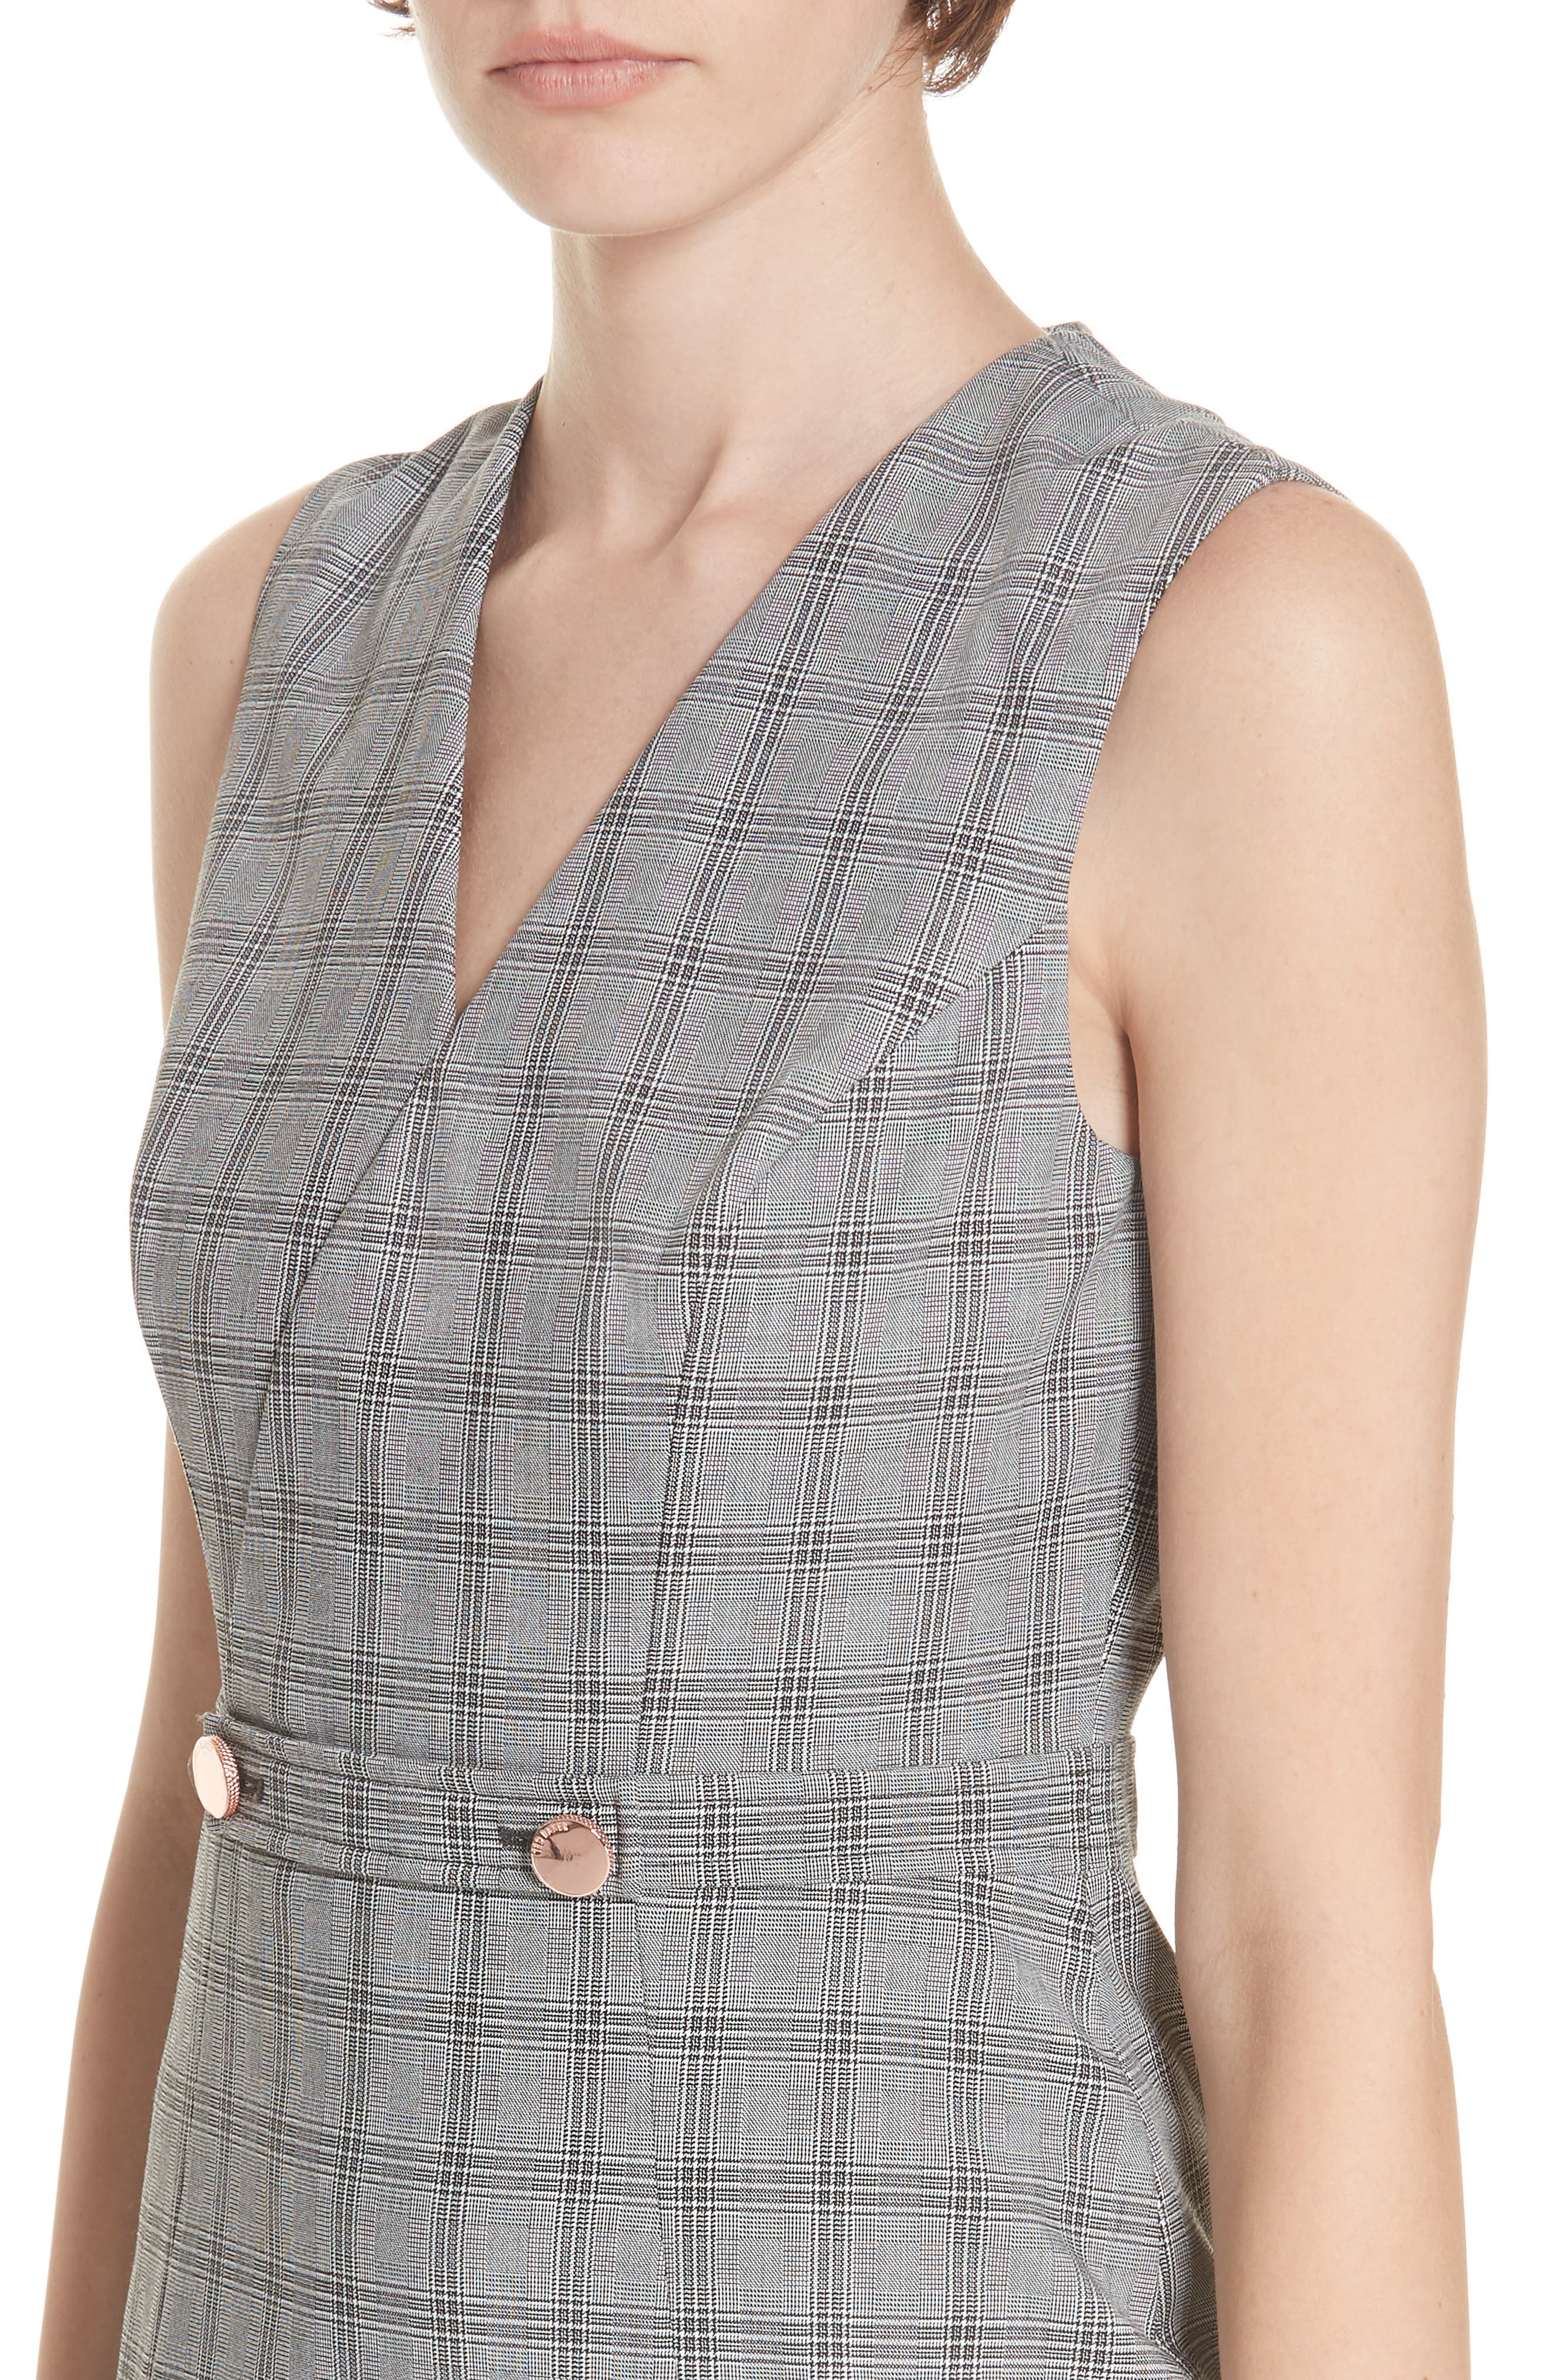 Ted Working Title Ristad Check Sheath Dress,                             Alternate thumbnail 4, color,                             GREY